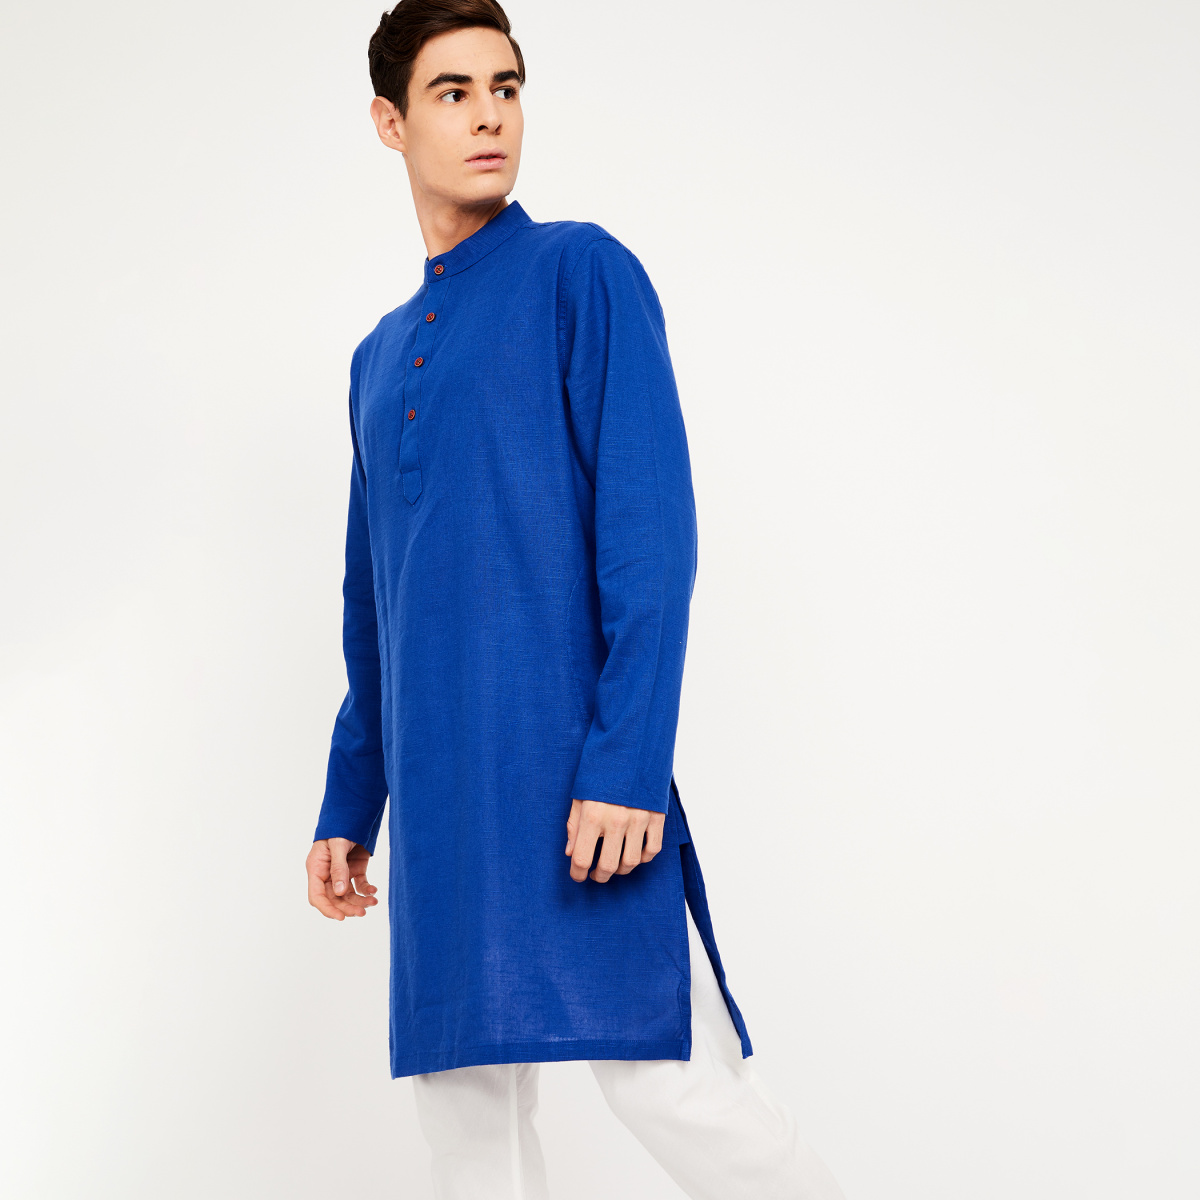 MELANGE Solid Full Sleeves Kurta